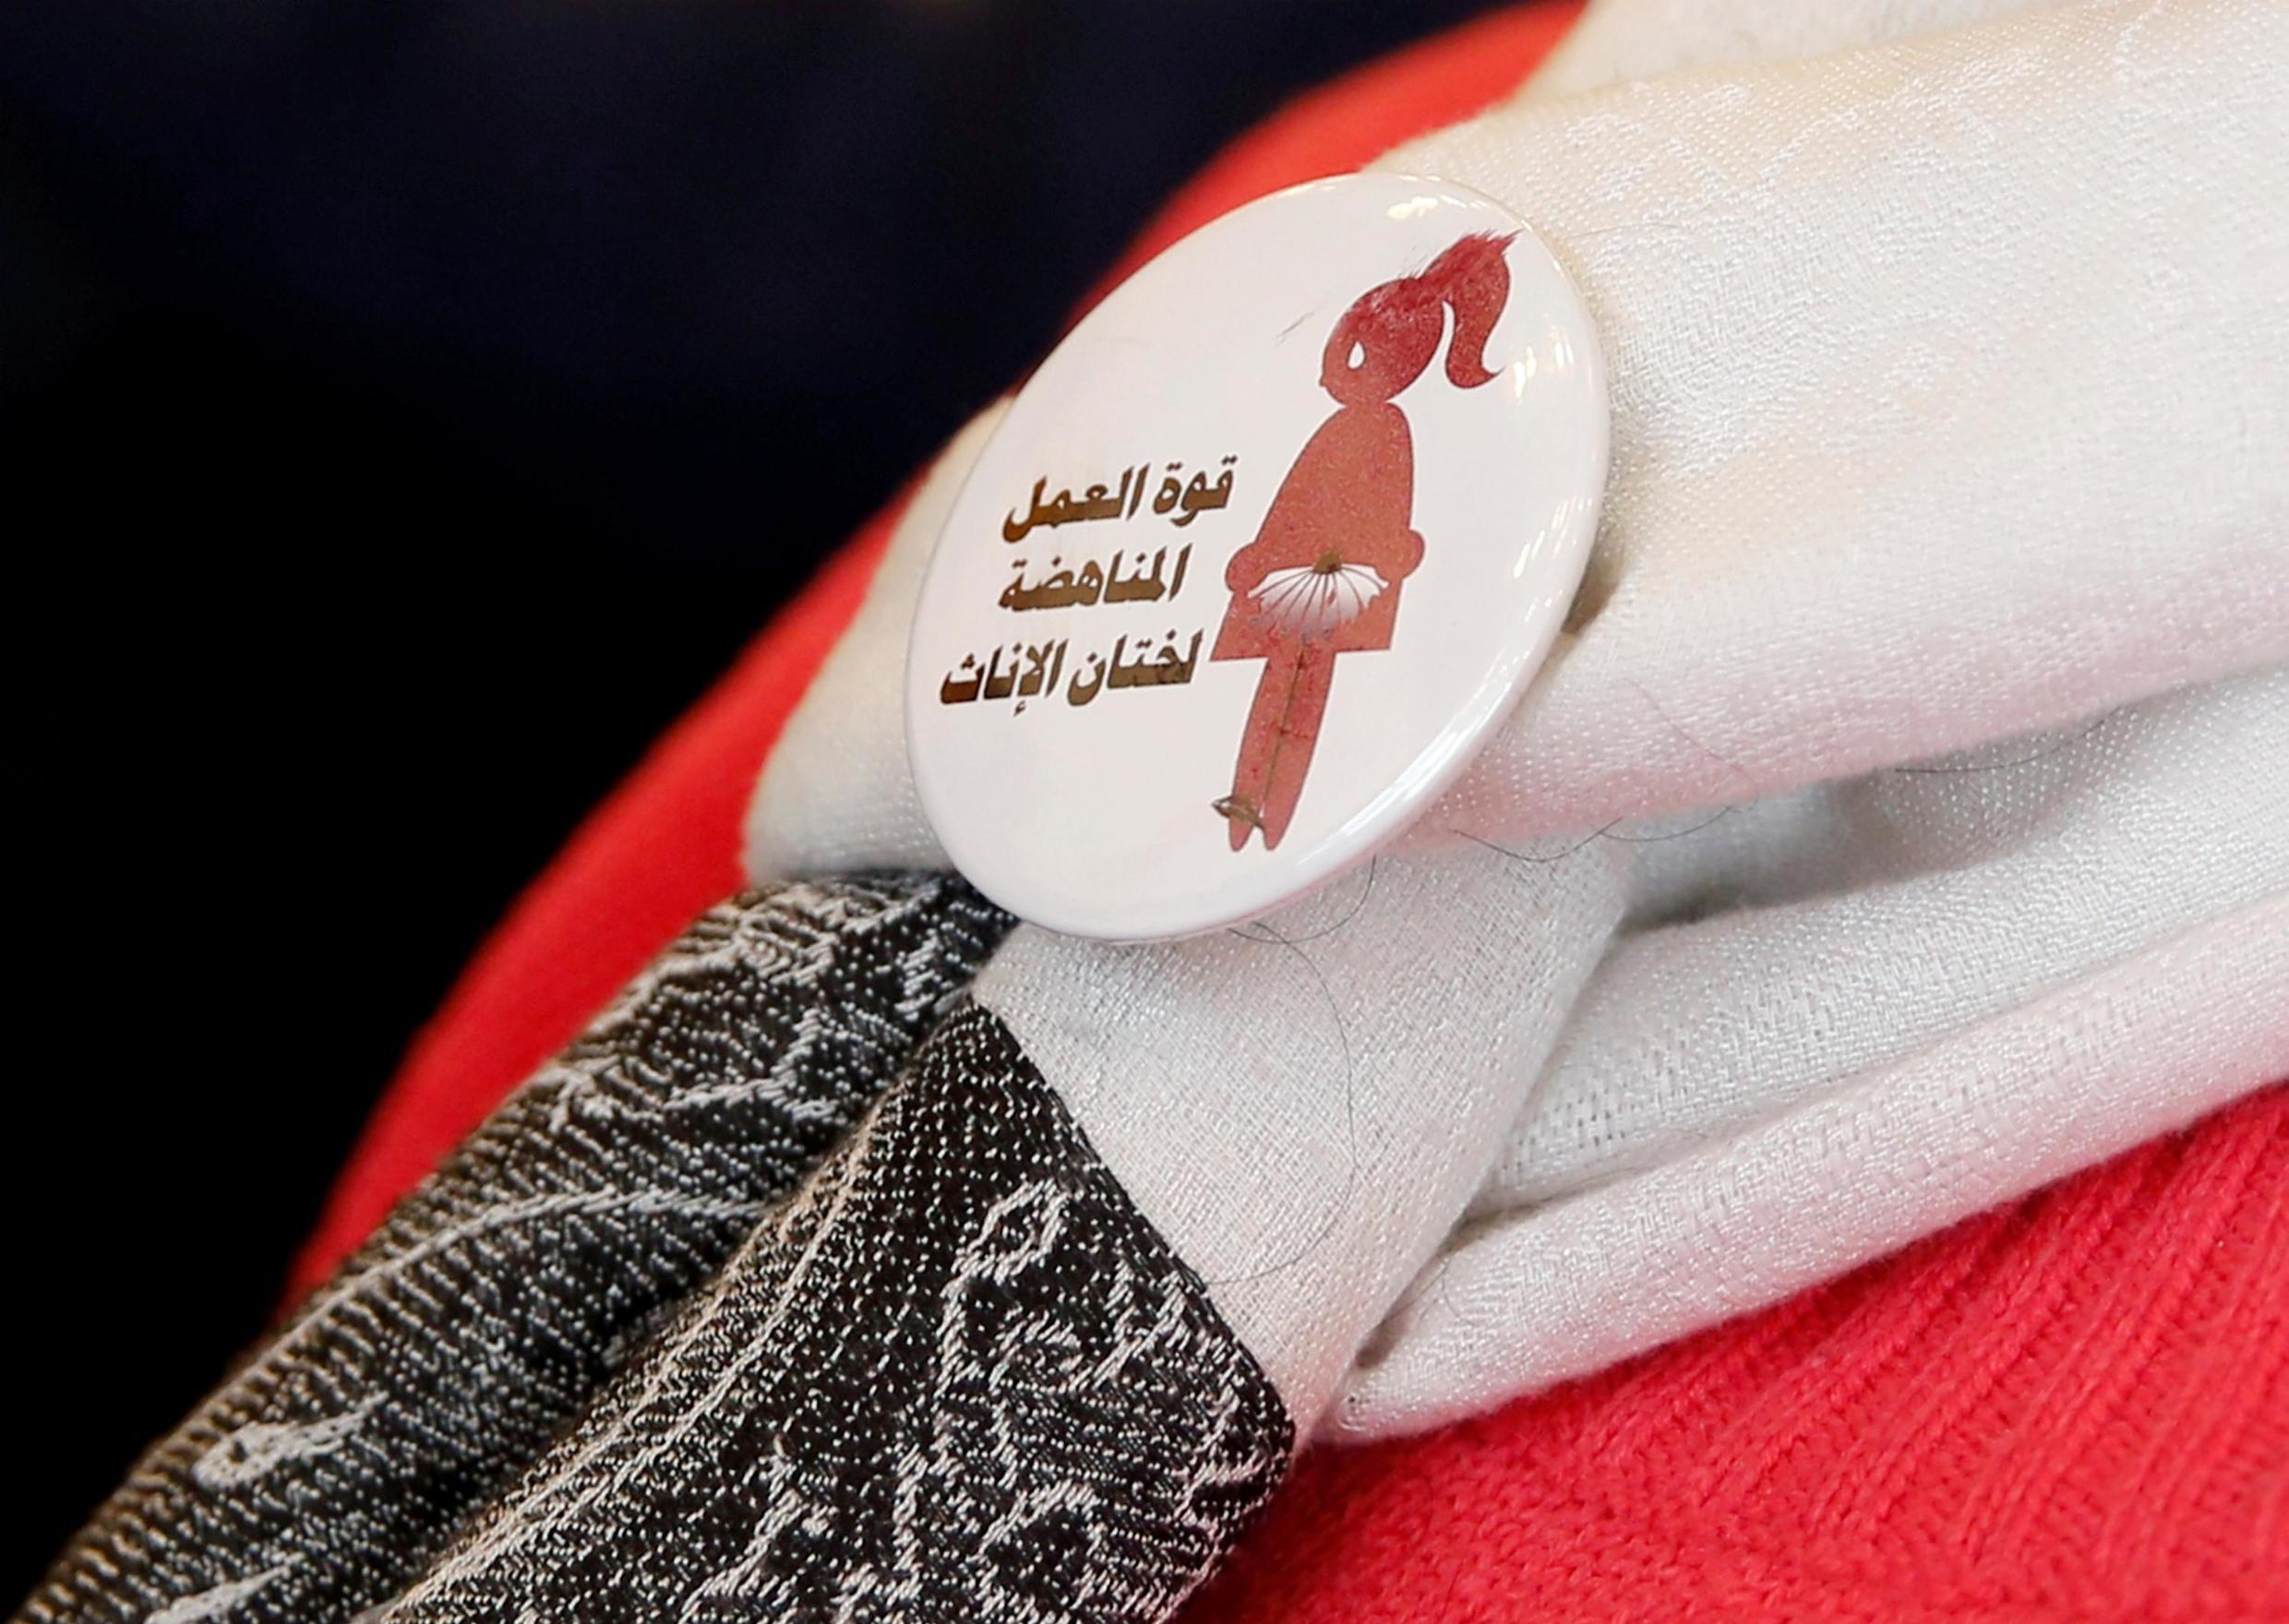 Campaigns are underway in Egypt to end the practice of female genital mutilation.